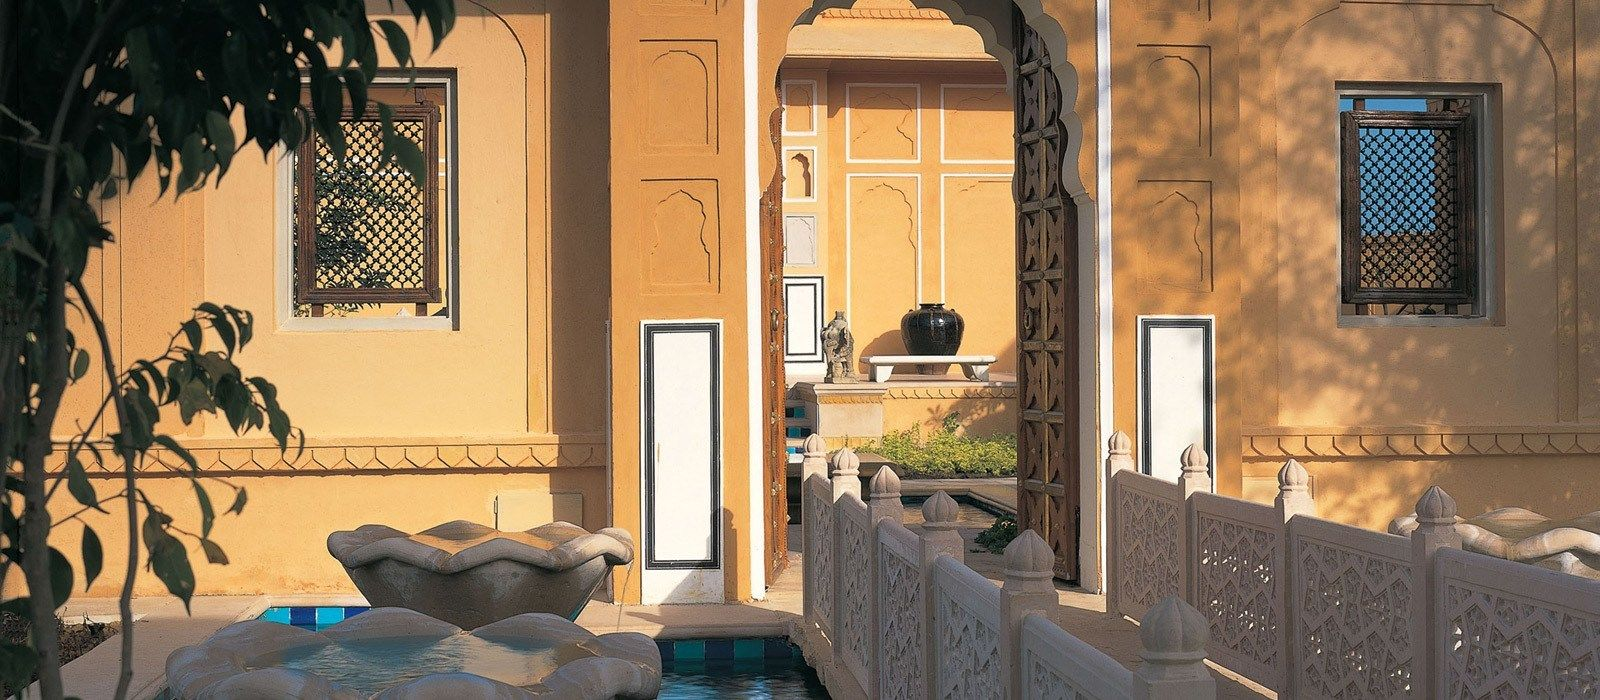 The Oberoi Rajvilas Hotel In North India Enchanting Travels